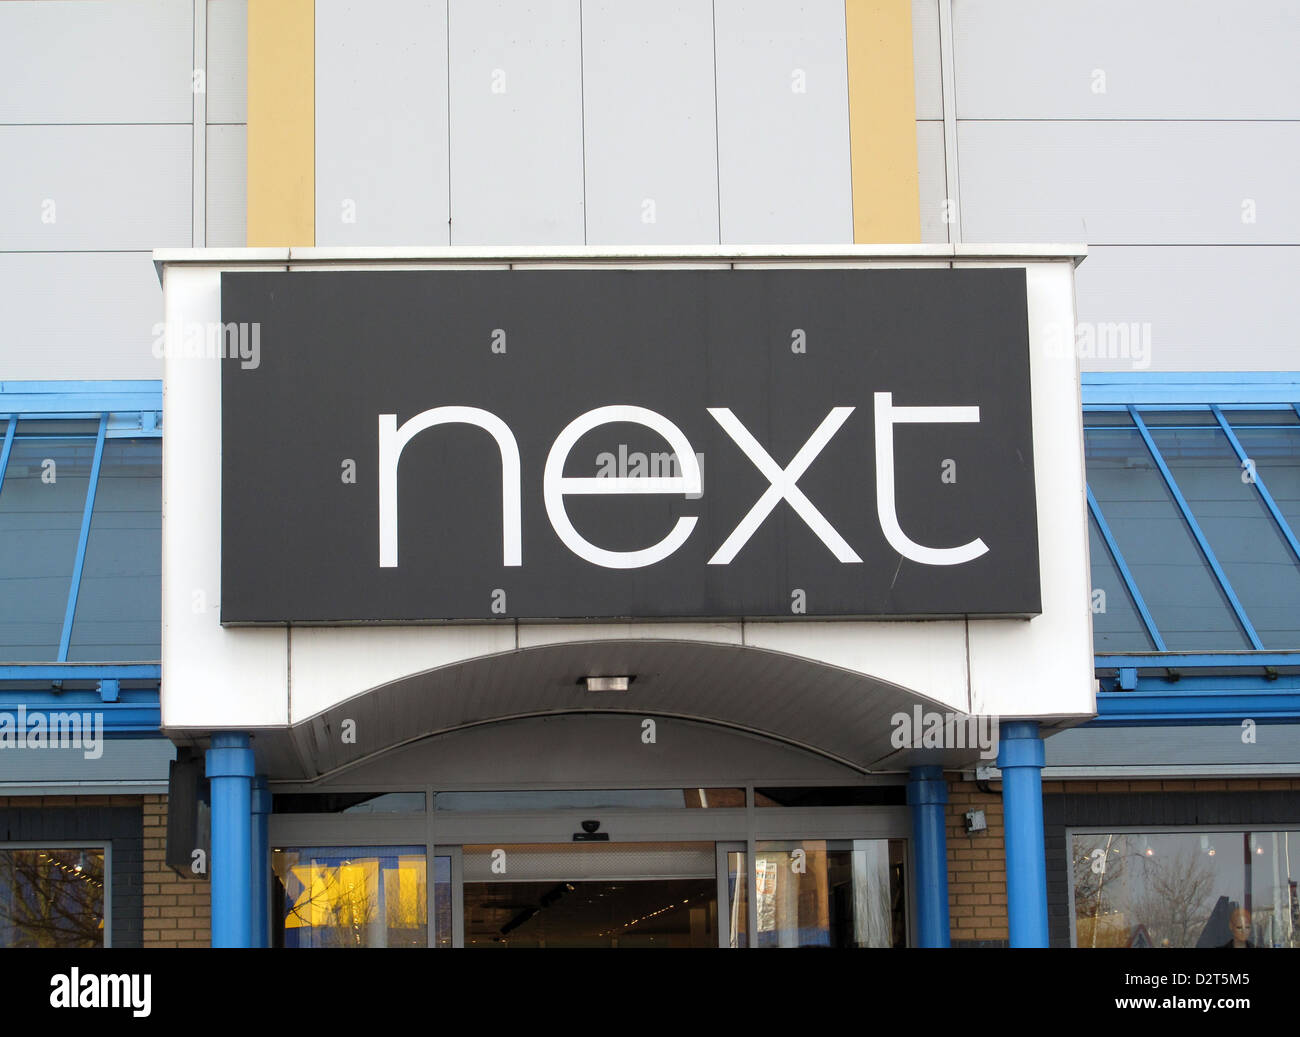 Nrxt clothes store in Croydon Surrey United Kingdom - Stock Image